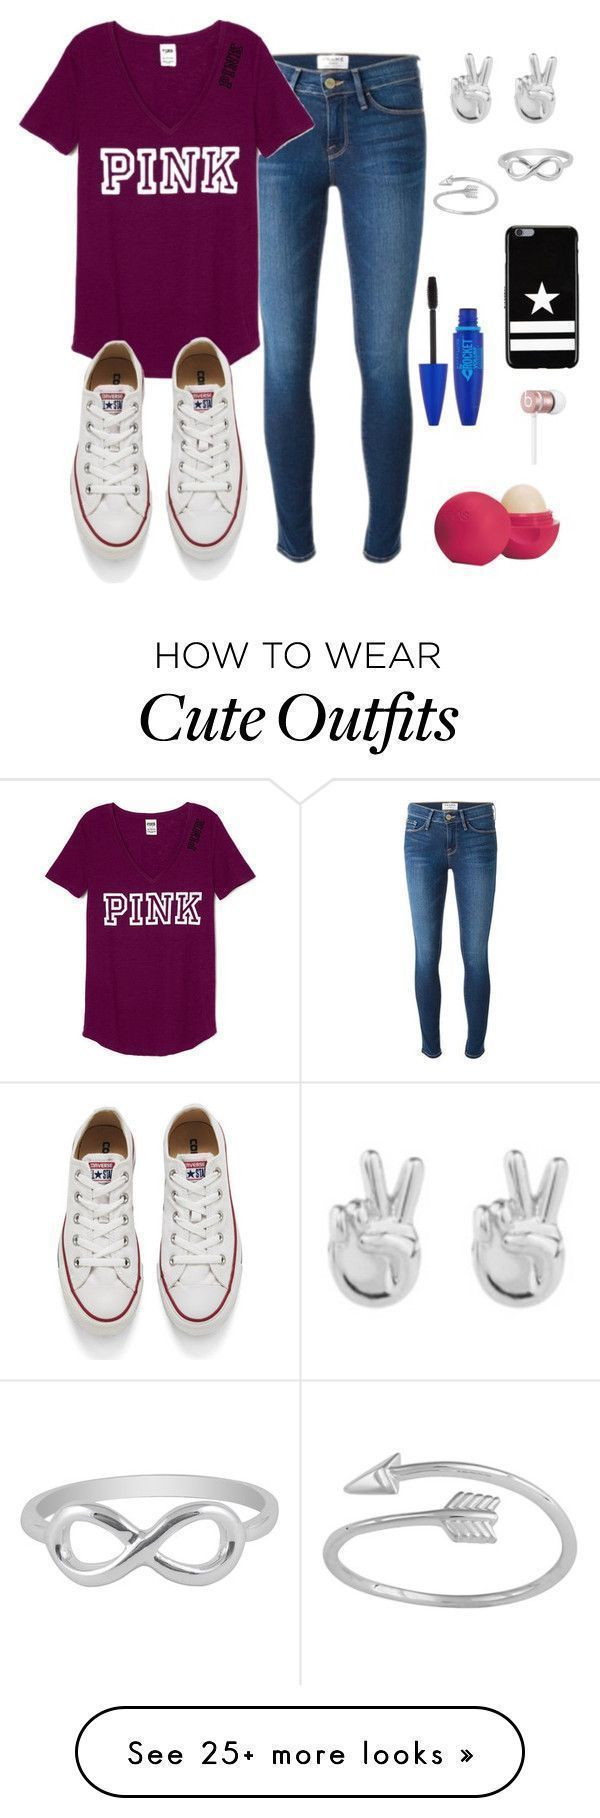 12 casual spring outfits for school with Converse shoes #CheapBeautyProducts – skater girl outfits